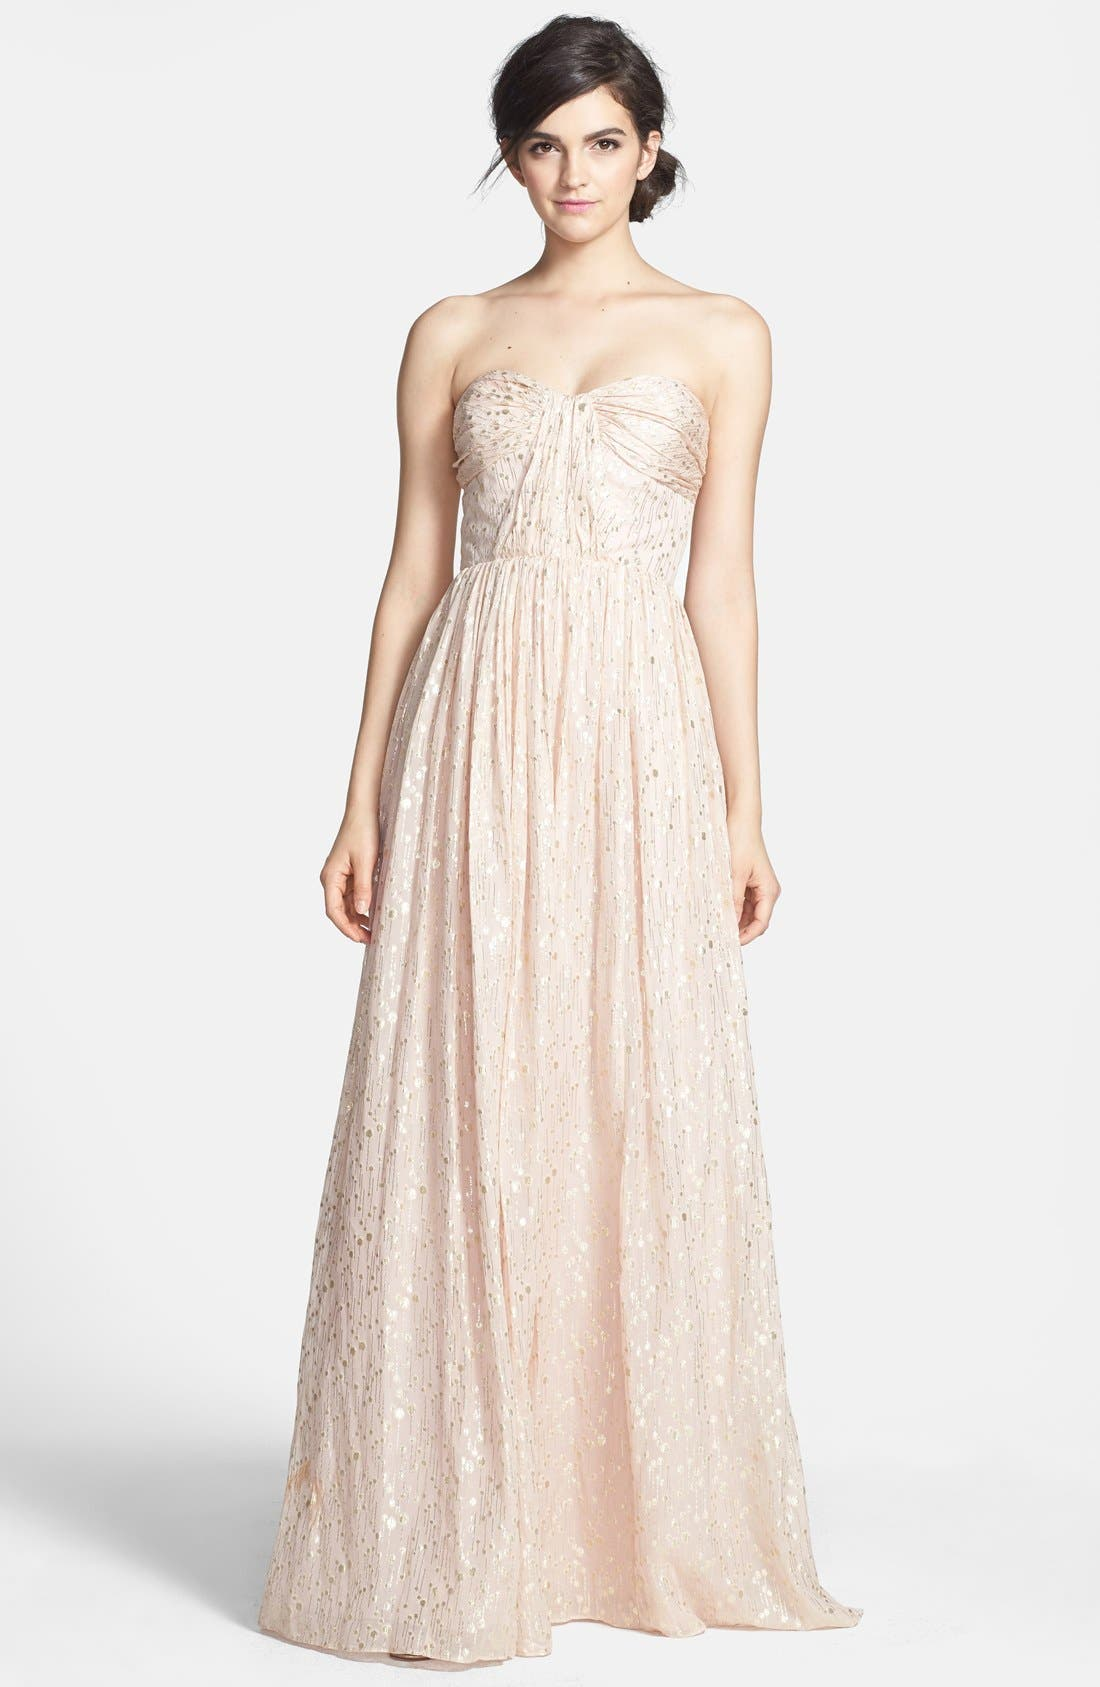 ERIN ERIN FETHERSTON, 'Coralie' Foiled Silk Chiffon Gown, Main thumbnail 1, color, 689